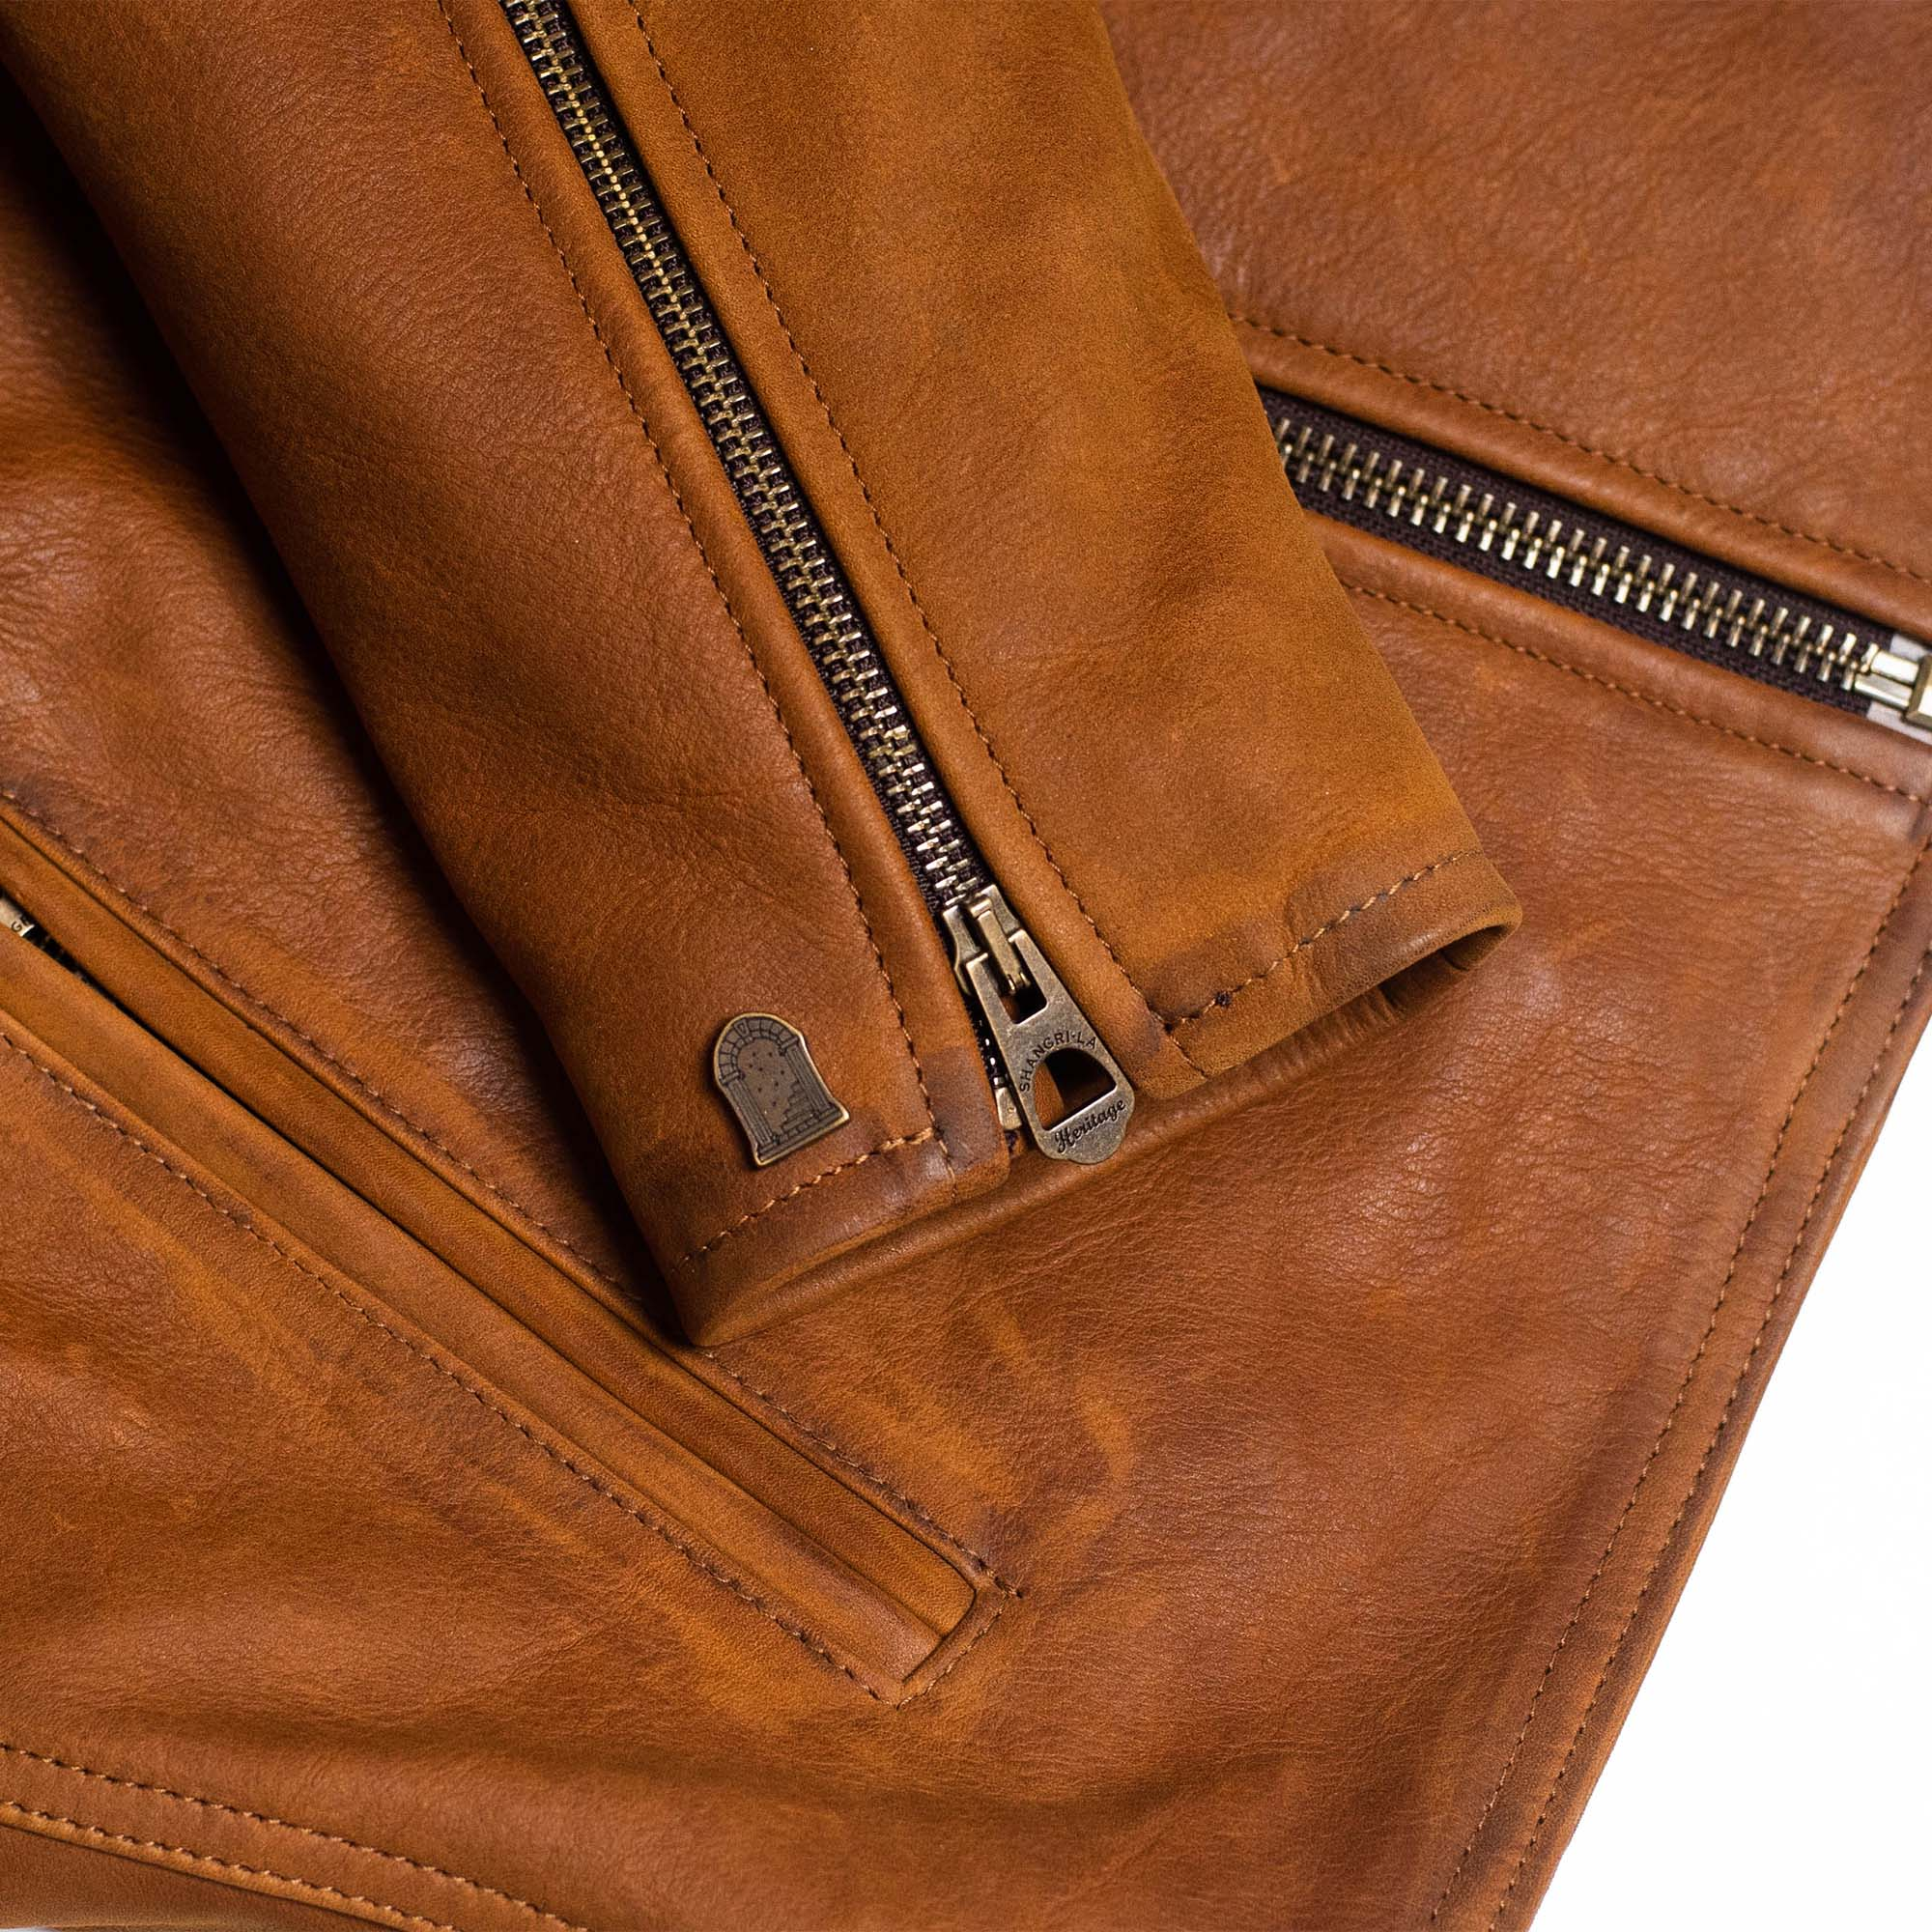 shangri-la-heritage-cafe-racer-nubuck-leather-jacket-still-life-detail